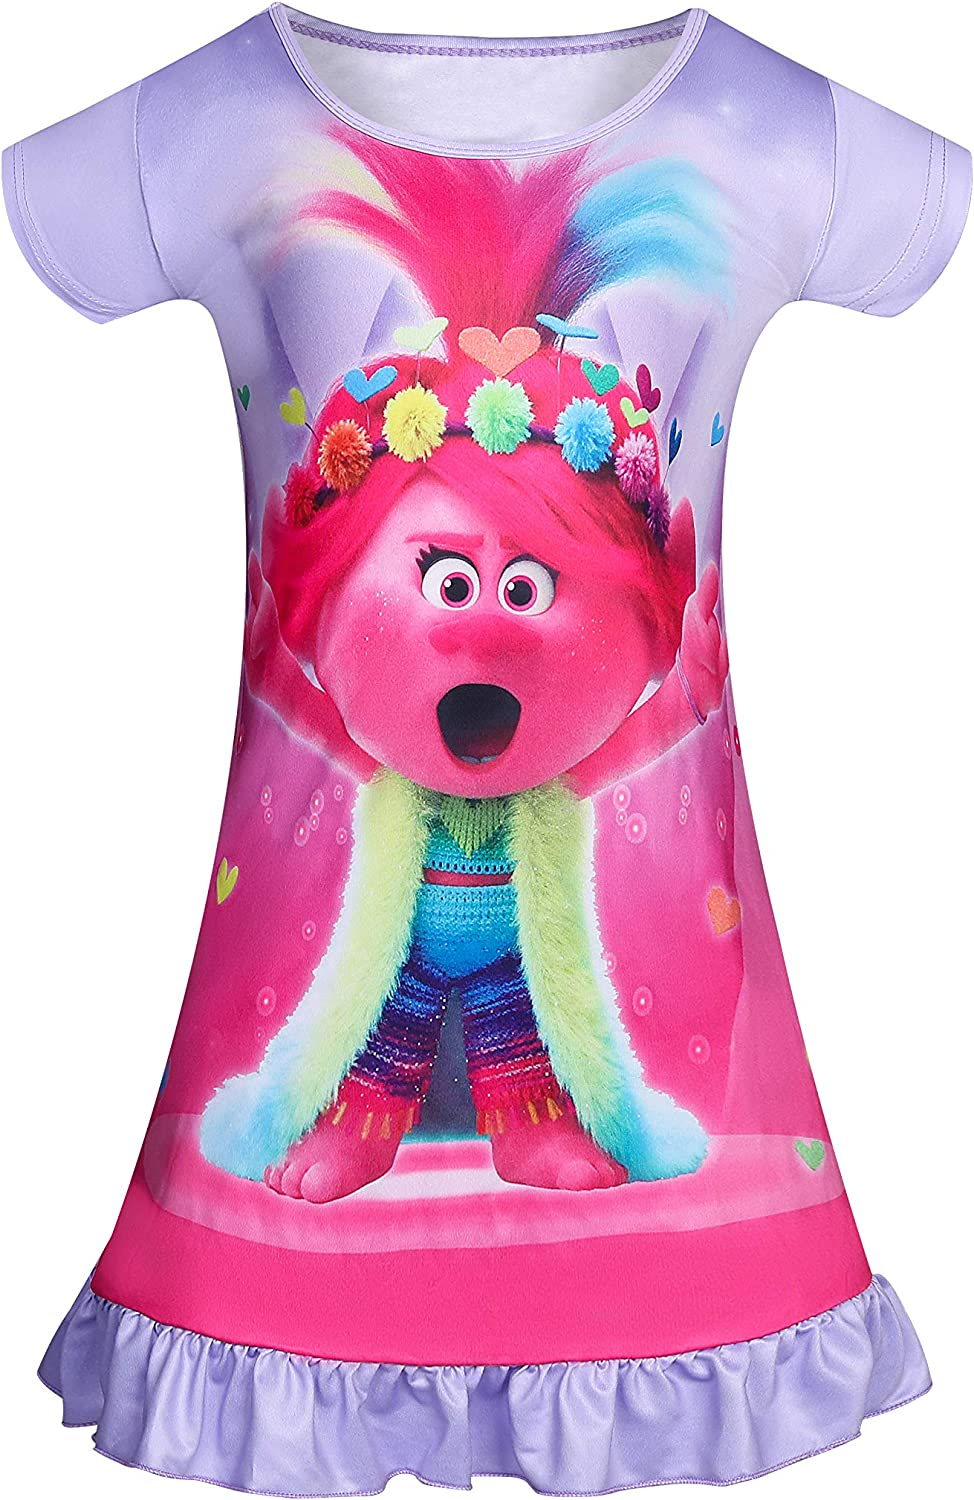 KISSI Trolls Nightgowns for Girls Toddler Bedding Shirts Princess Pajamas Short Sleeve Poppy Home Wearing 3-8Years